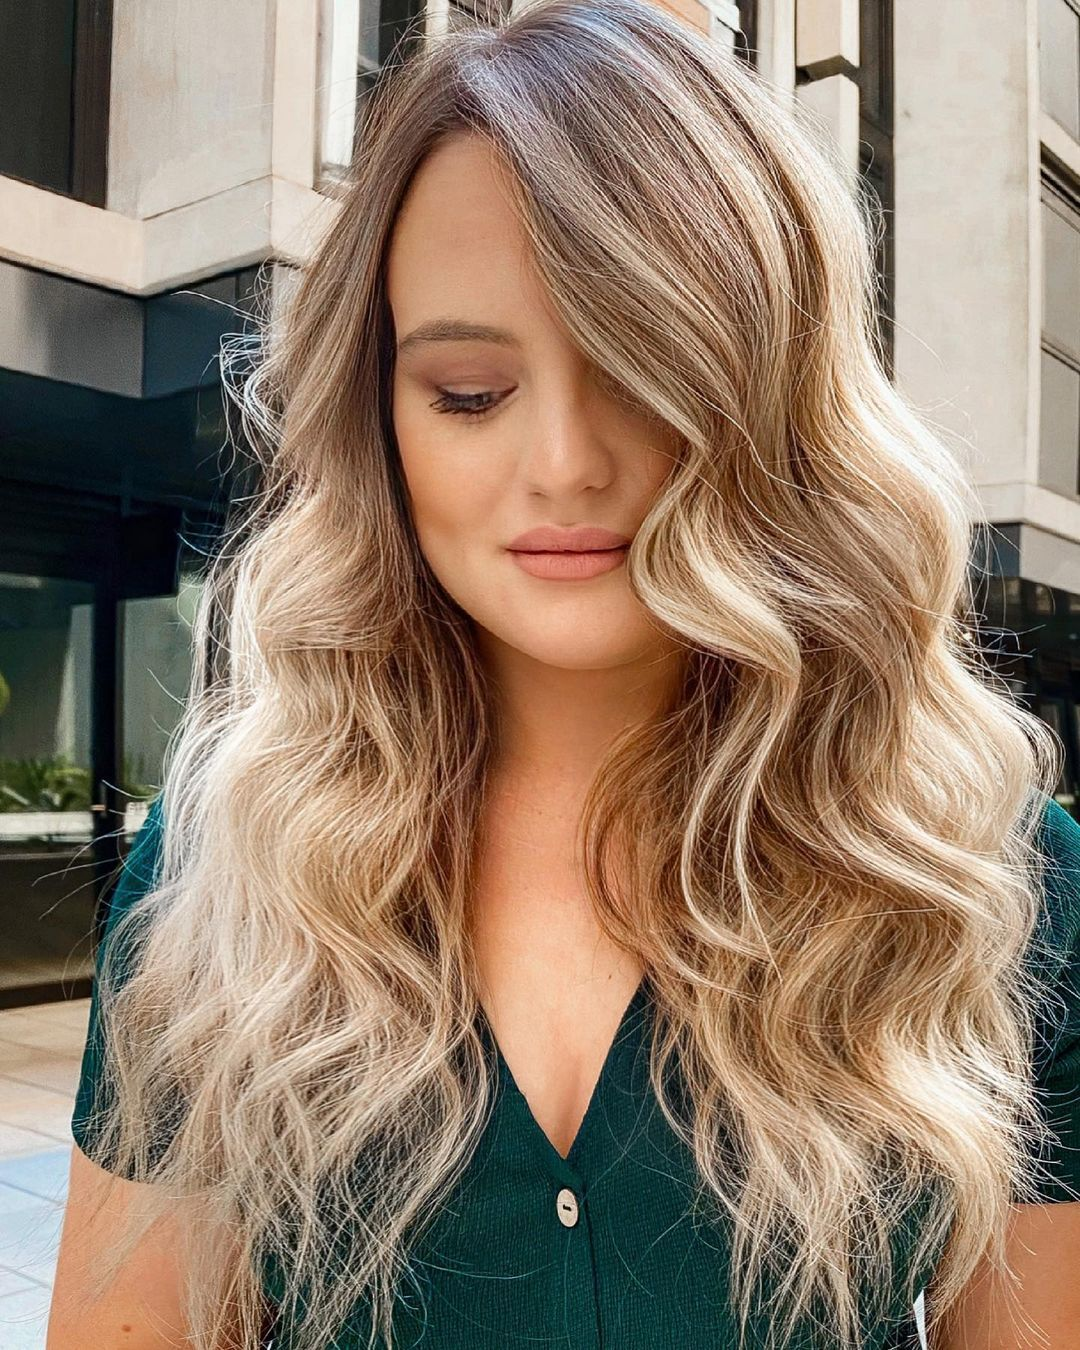 50 Newest Hairstyle For Women And Hair Trends For 2021 images 3